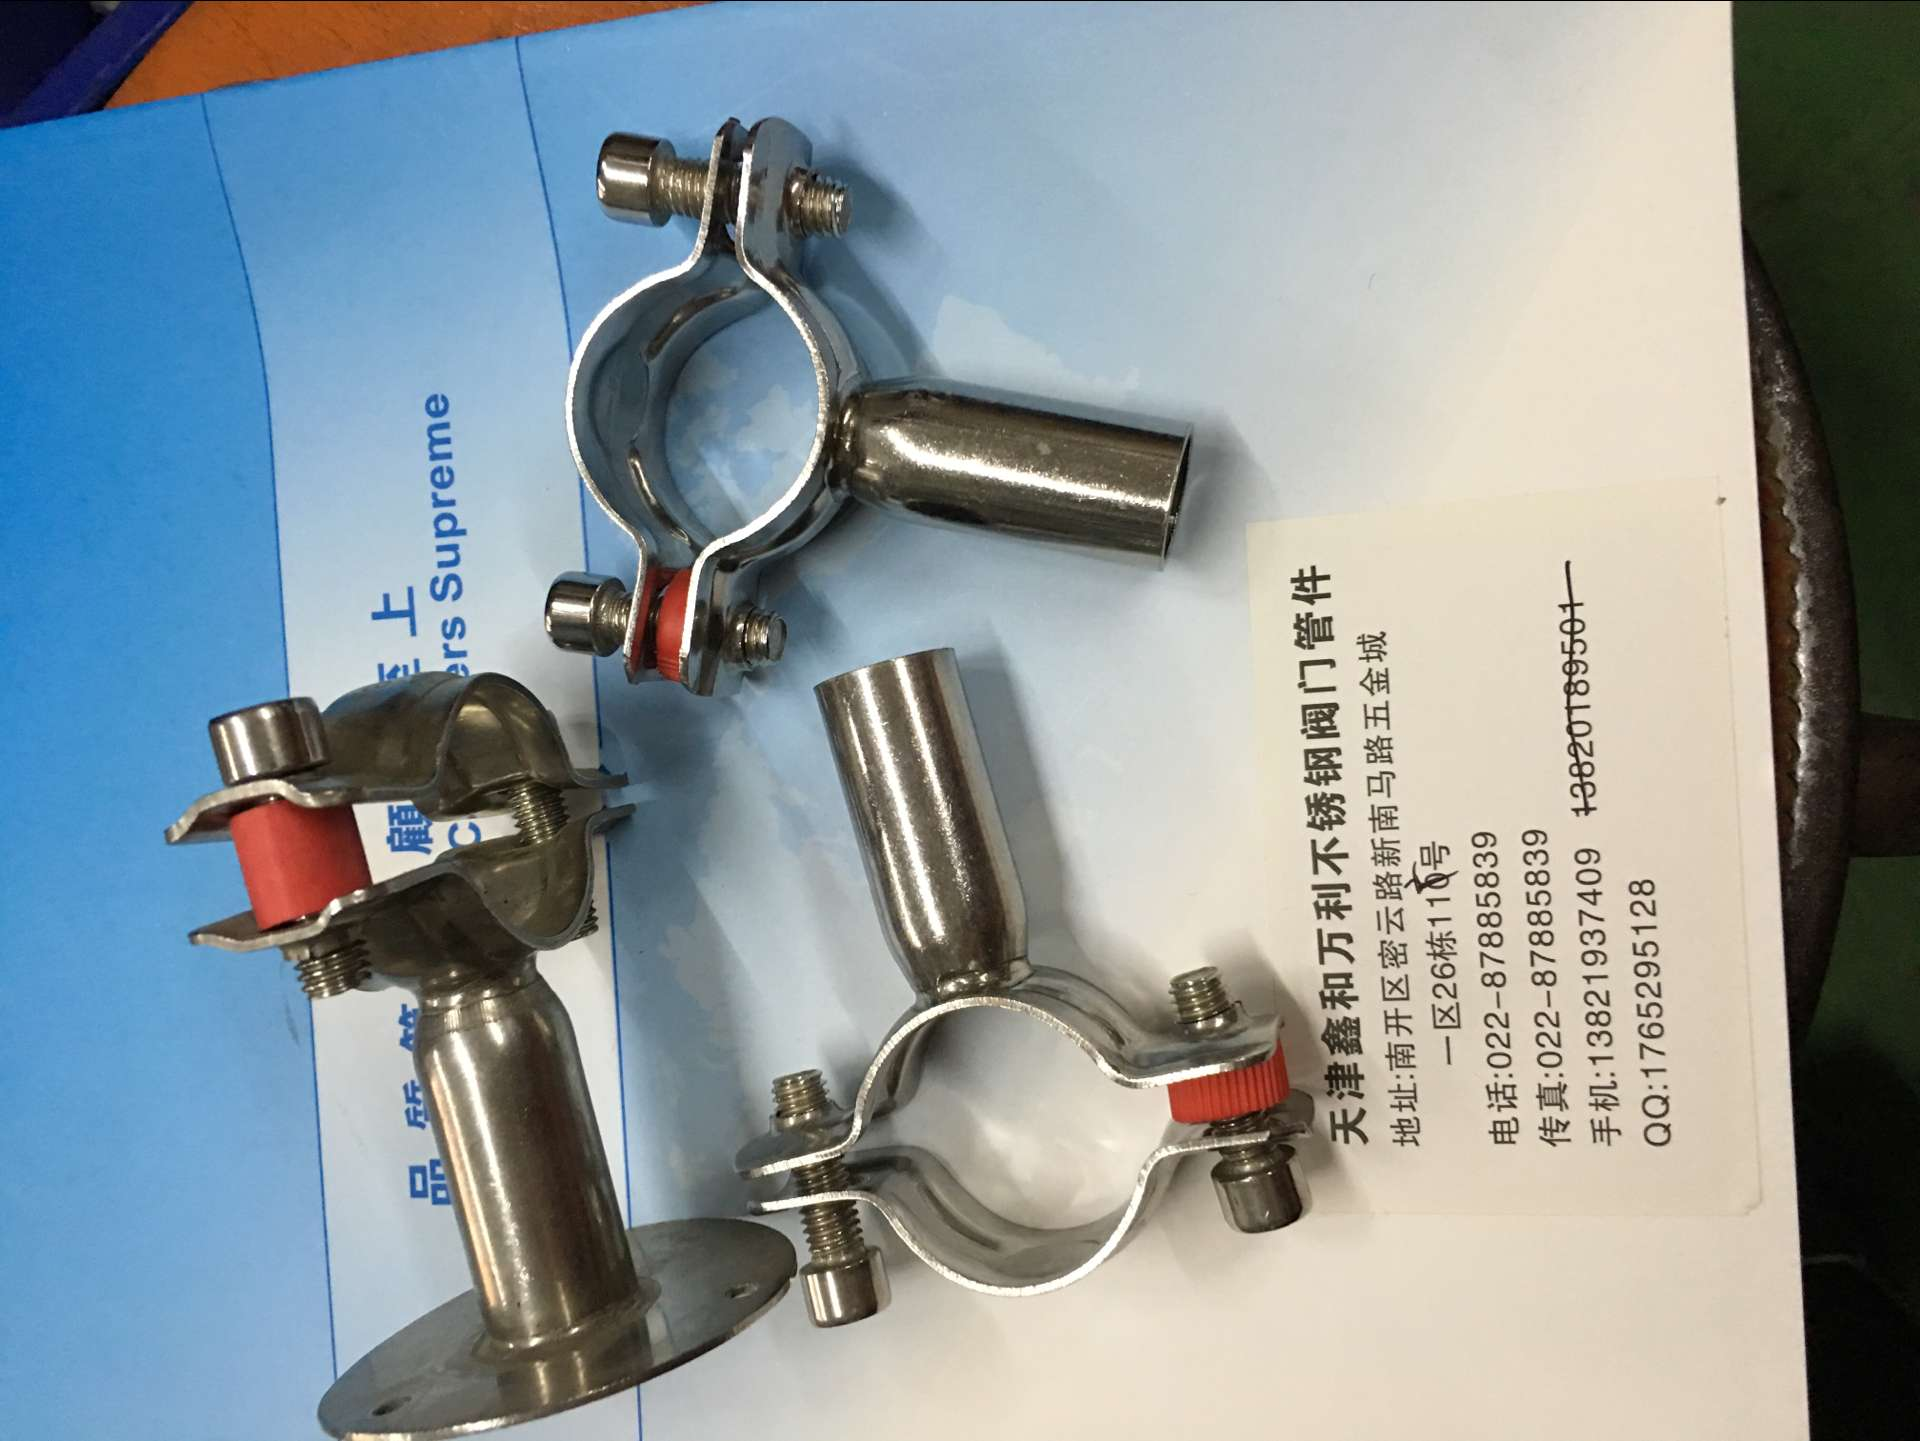 Bolt clamp, stainless steel adjustable bolt pipe bracket, pipe clamp, welding pipeline, entrained chassis fixation